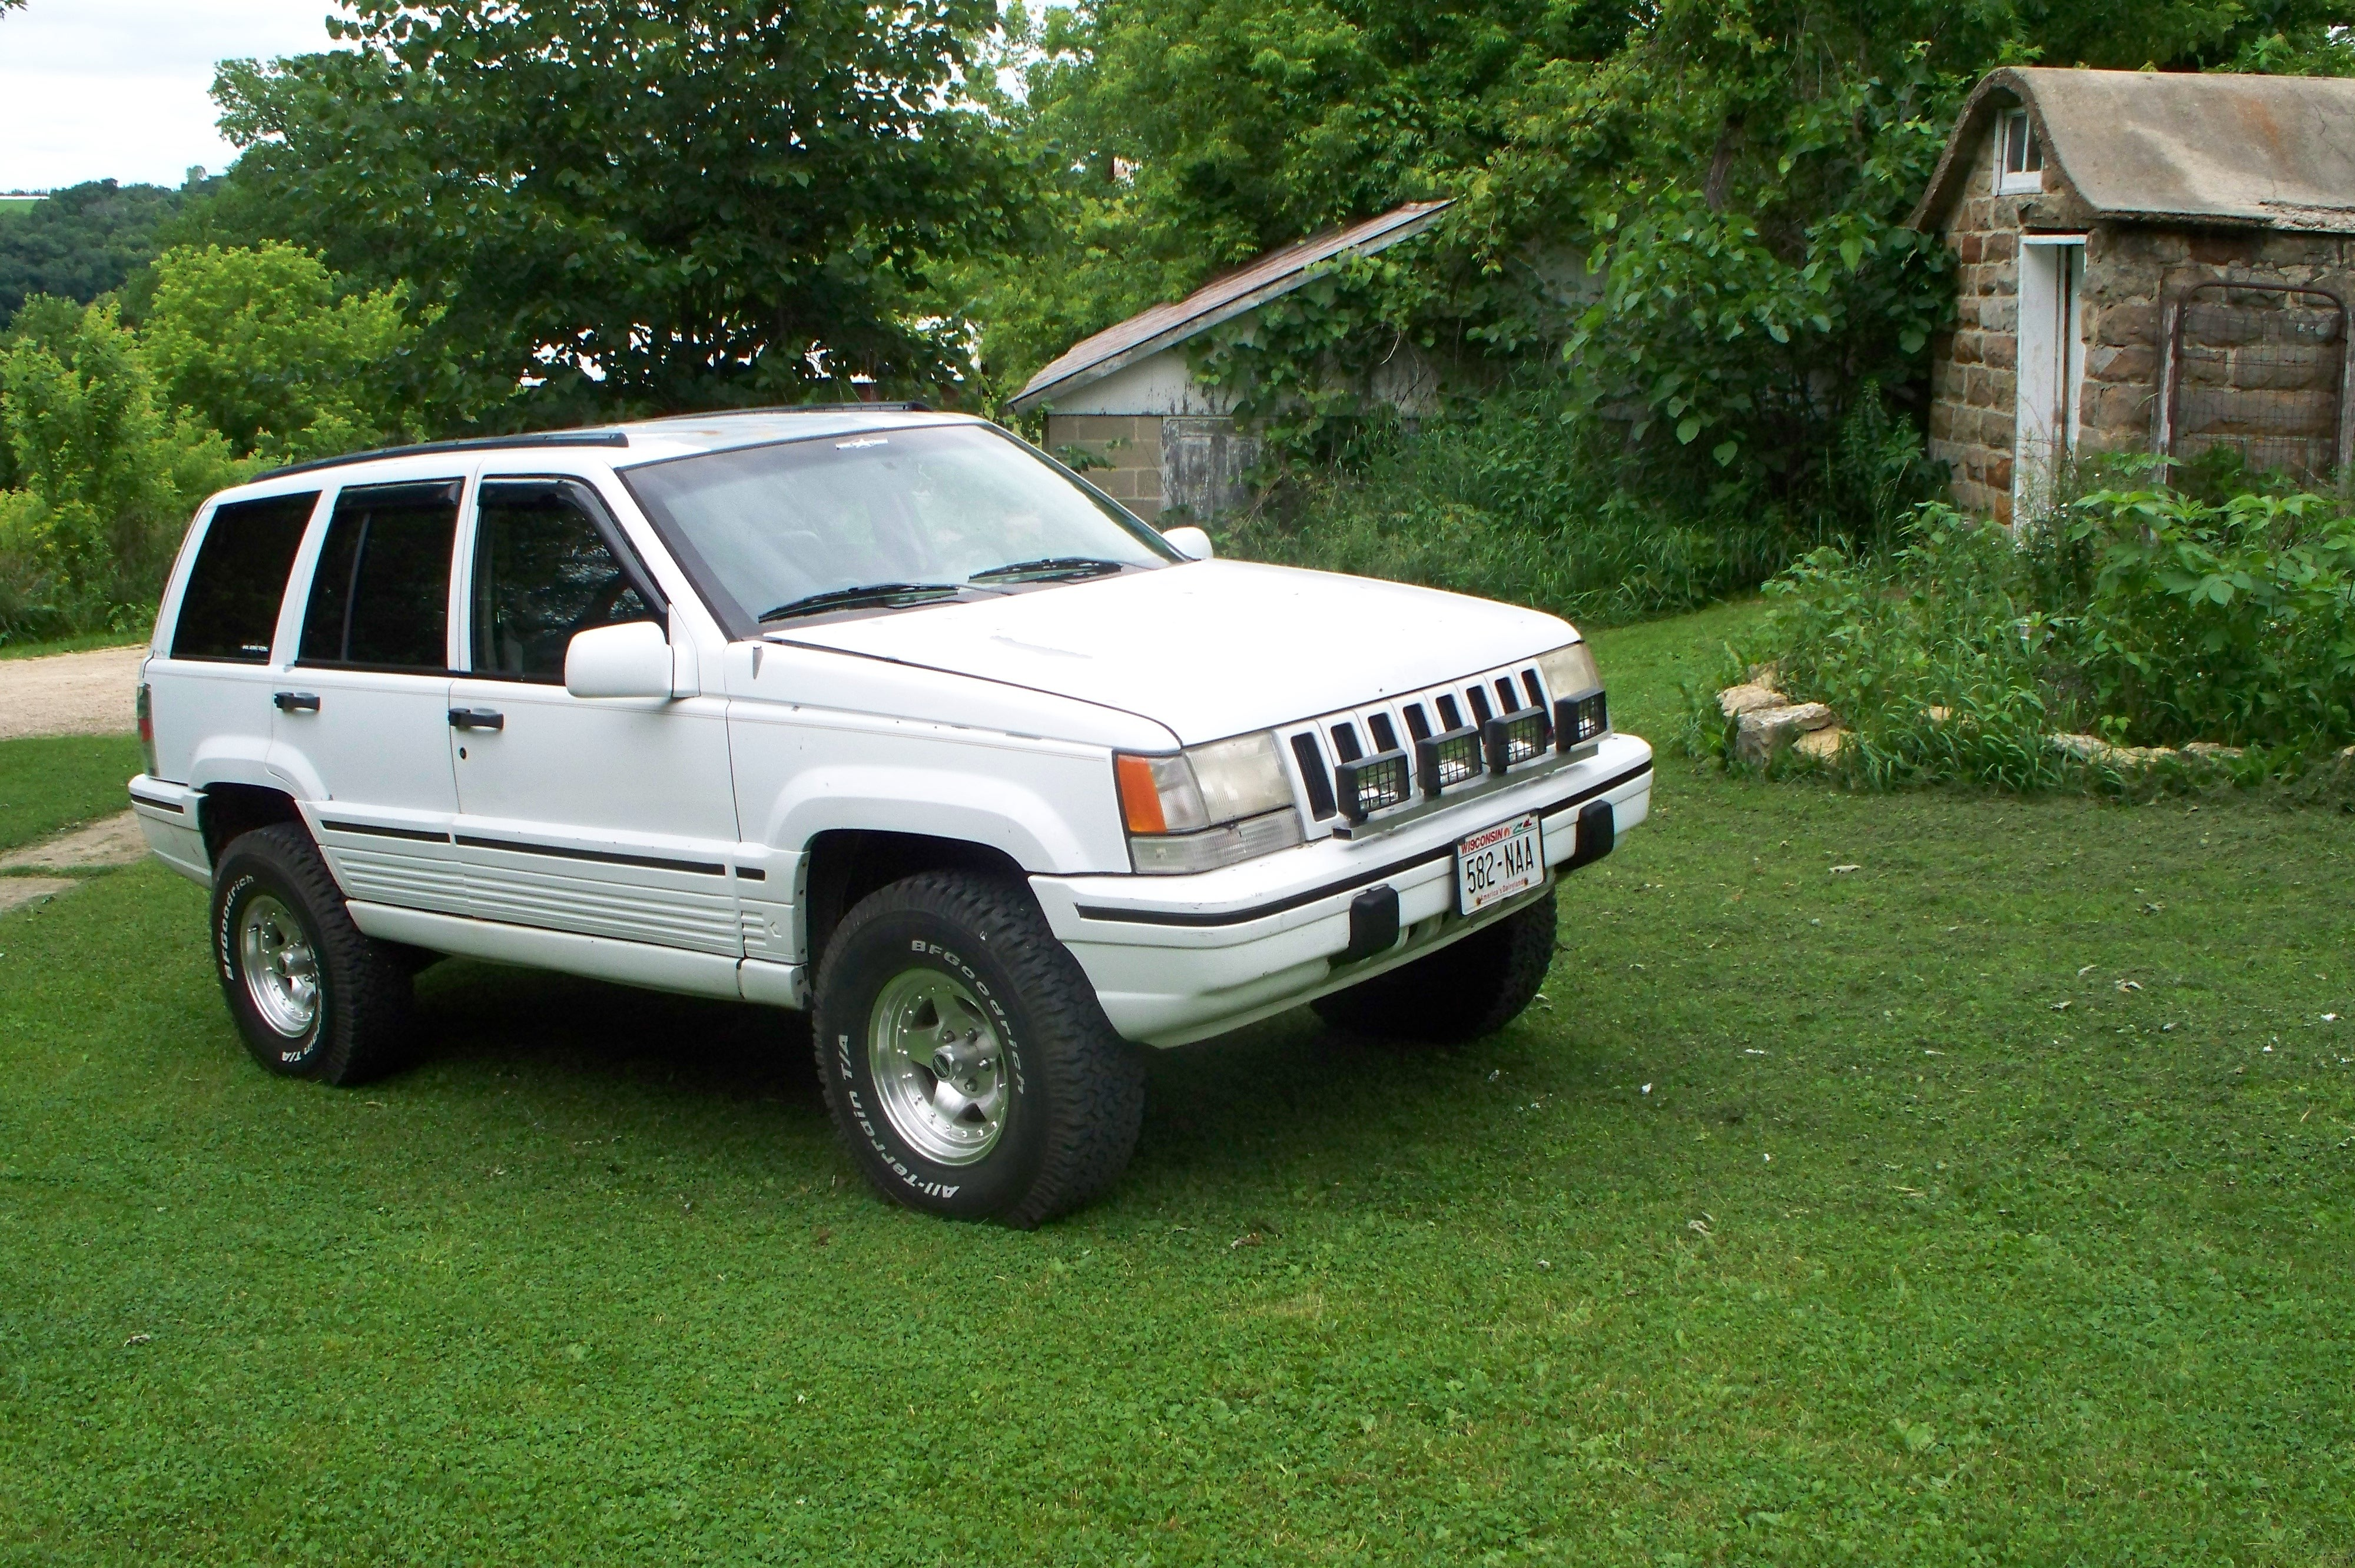 comanche-man's 1994 Jeep Grand Cherokee